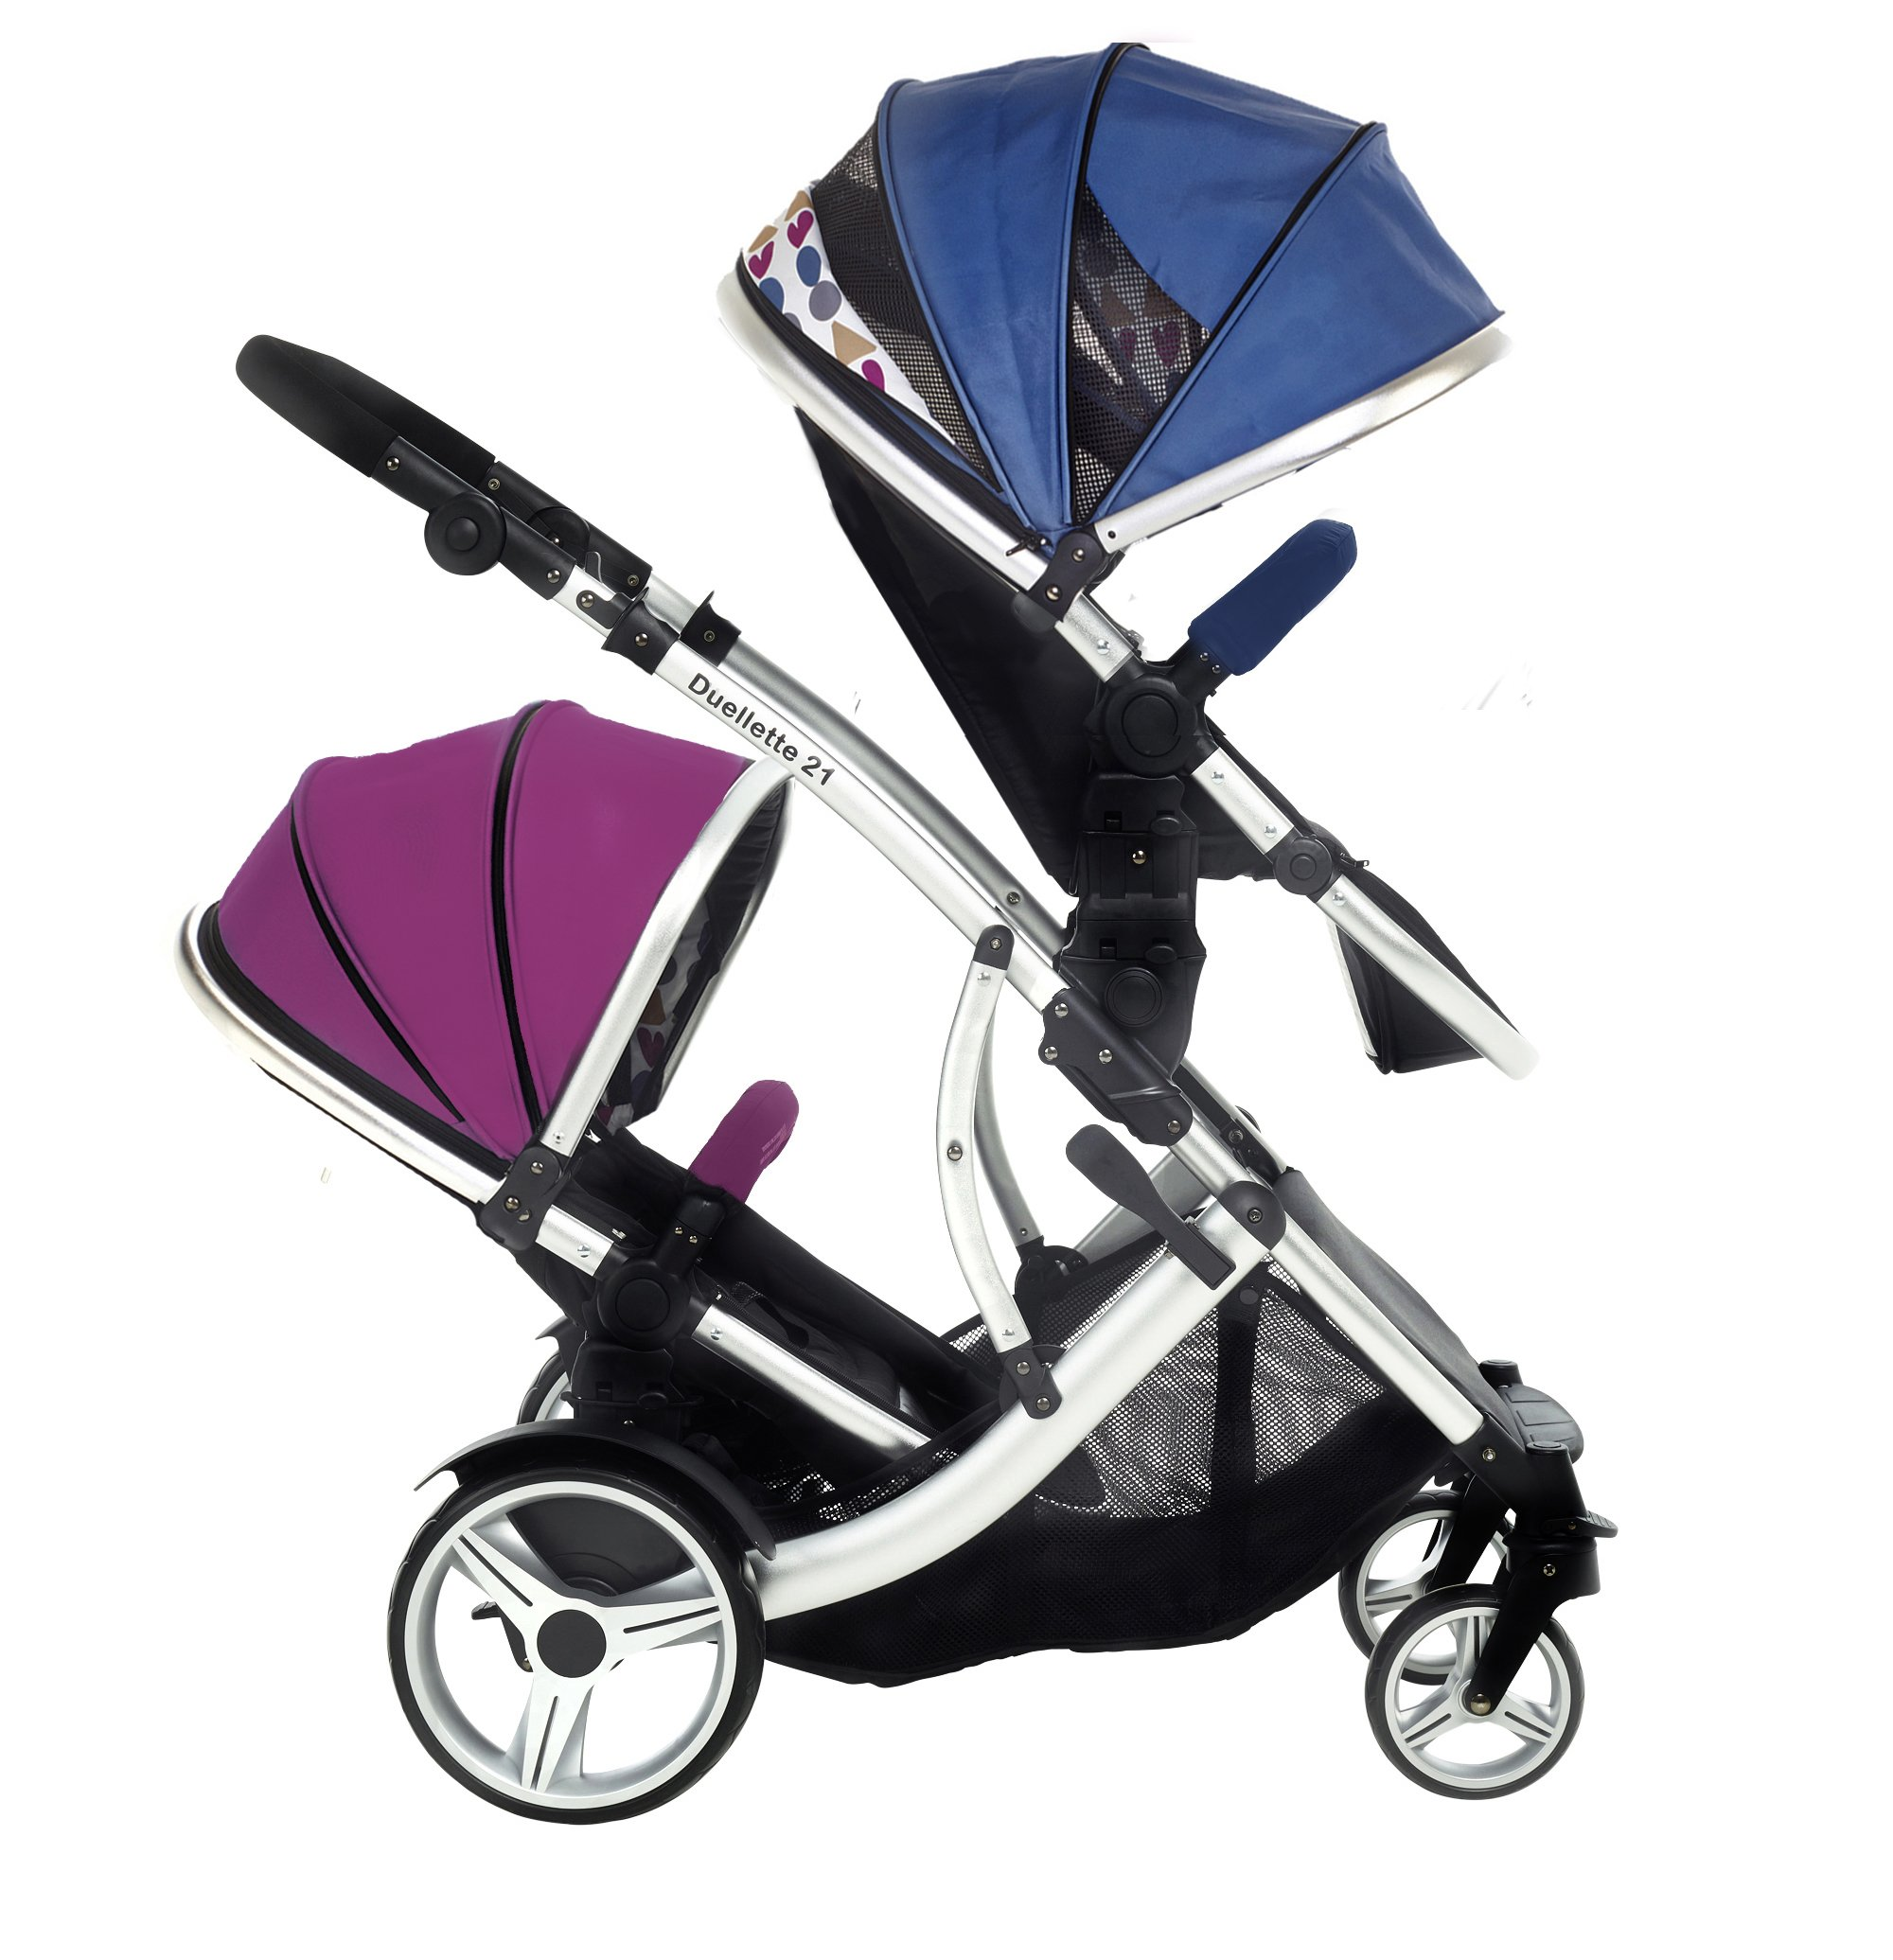 Kids Kargo Duellette 21 BS Combi Tandem Double Twin pushchair NEW COLOUR RANGE! (Raspberry carrycot - newborn/Blueberry seat - toddler 6mth +) Kids Kargo Ideal for newborn baby girl and and older son (6mth+) Various seat positions. Accommodates 1 or 2 car seats Carrycot (raspberry) converts to seat unit incl mattress. Toddler seat (blueberry) from 6 months 4